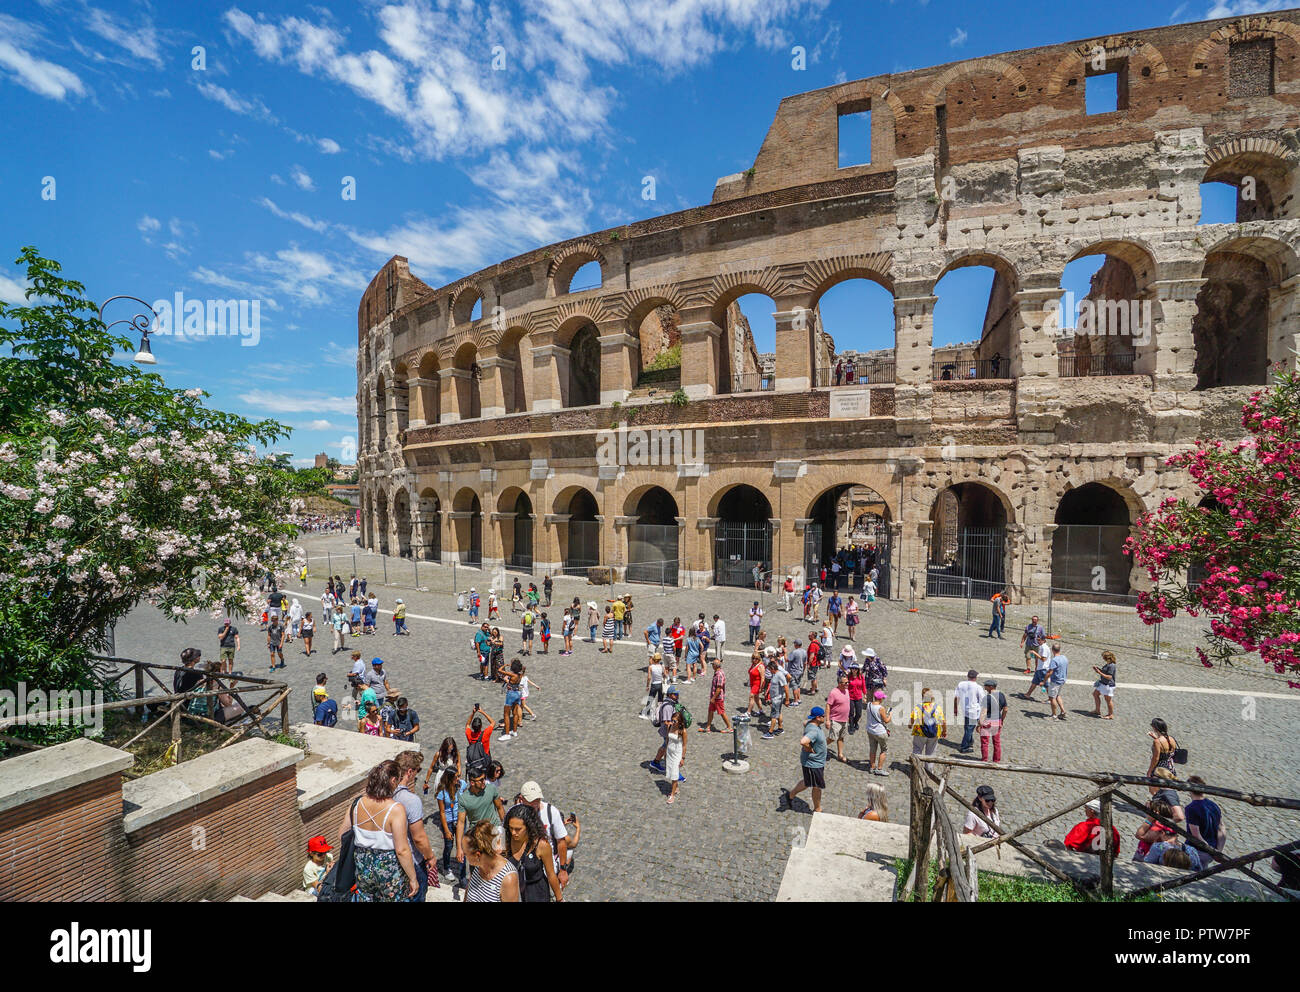 the monumental facade of the Colosseum, the largest Roman amphitheatre ever built and one of Rome's most iconic tourist attractions - Stock Image